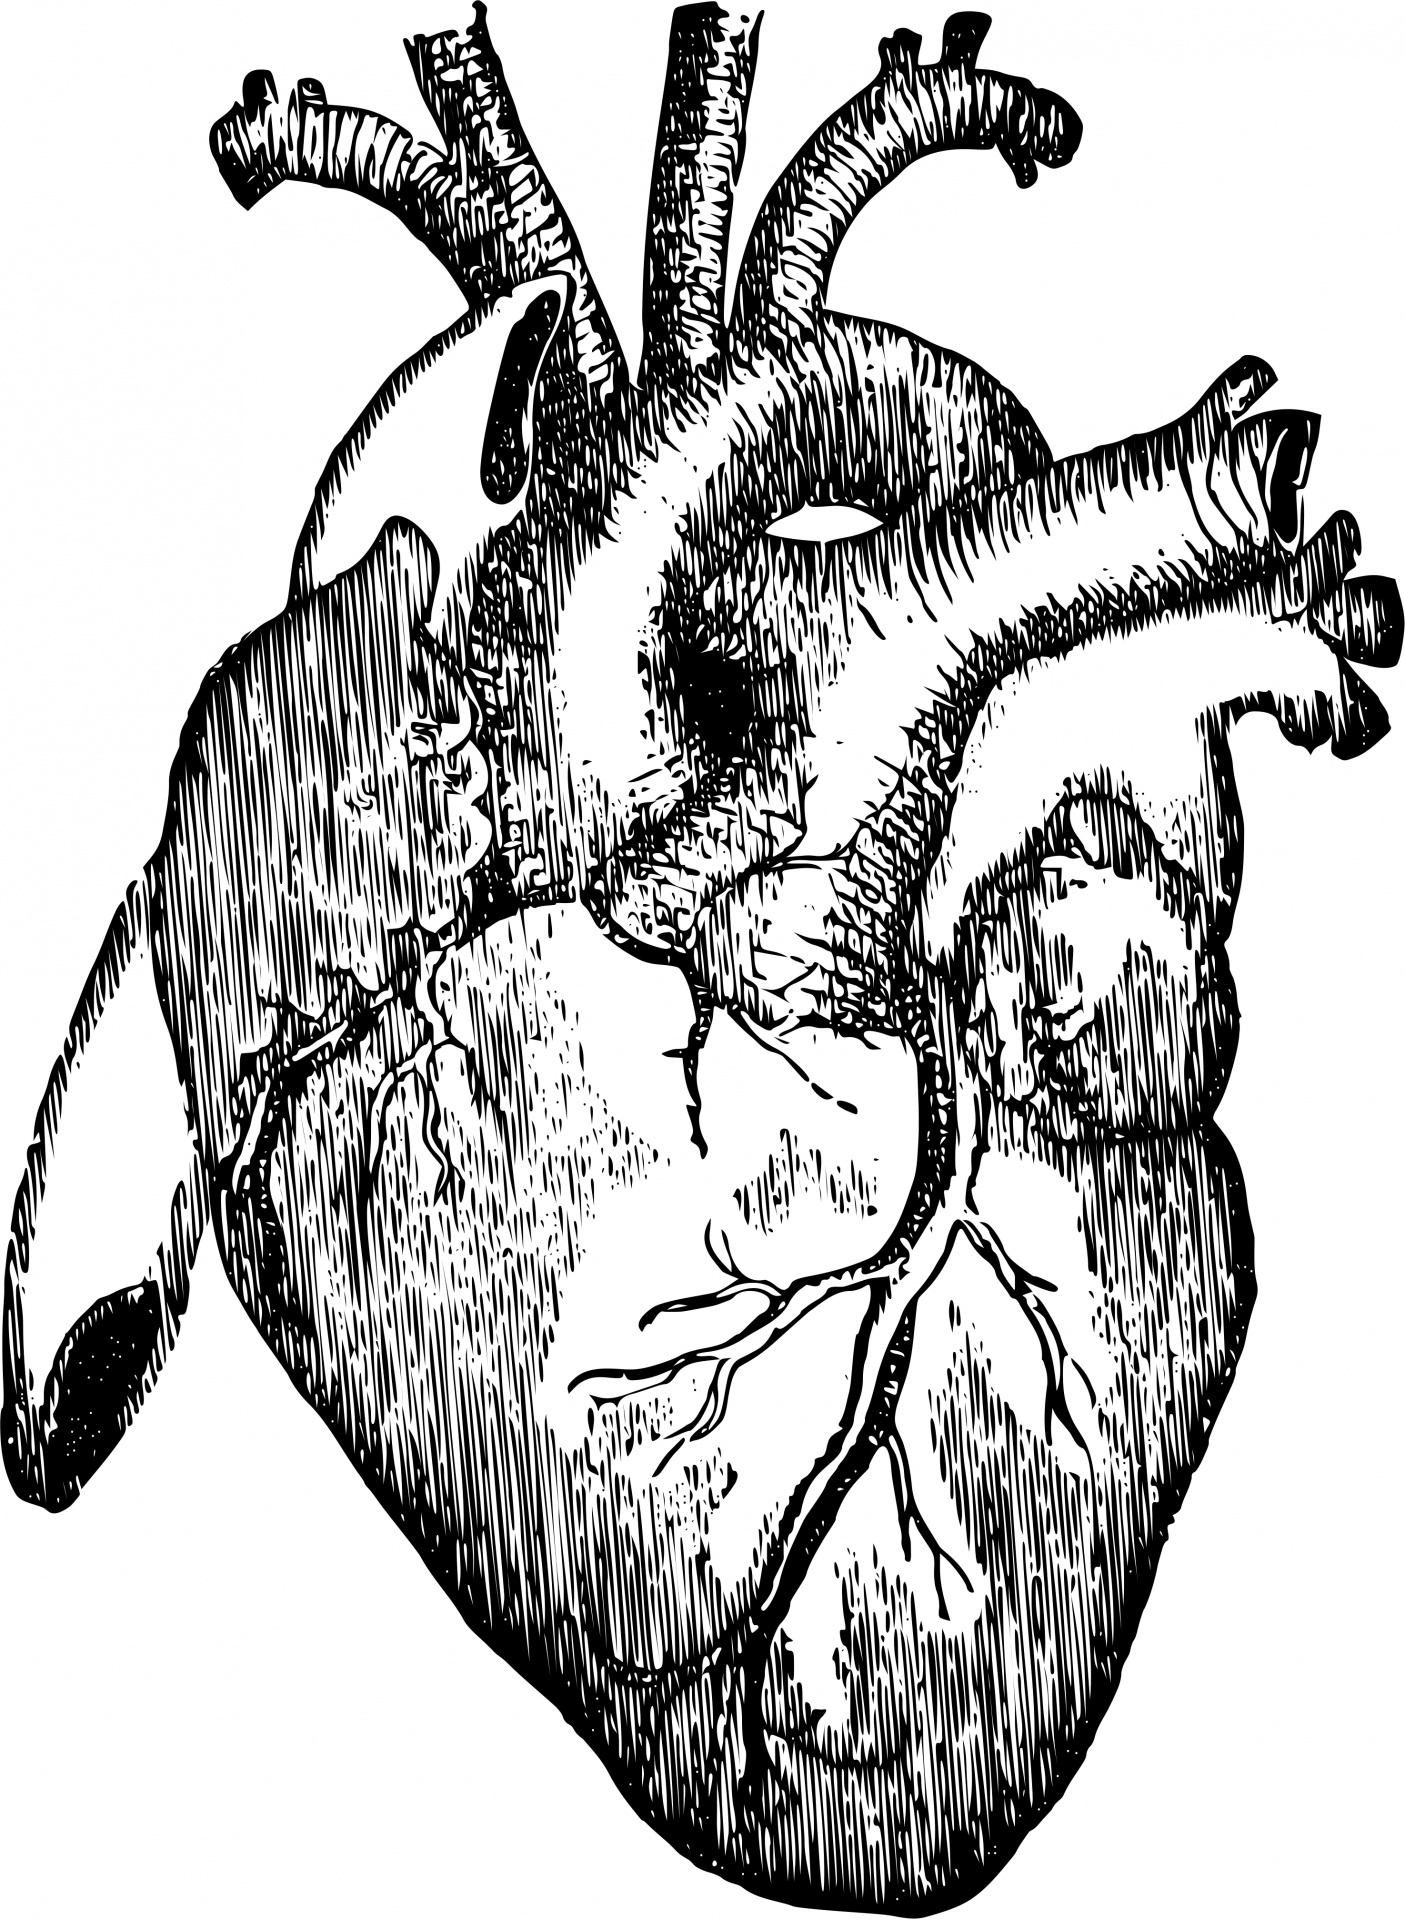 1405x1920 Black And White Pics Of Human Heart Realistic Black And White Hand